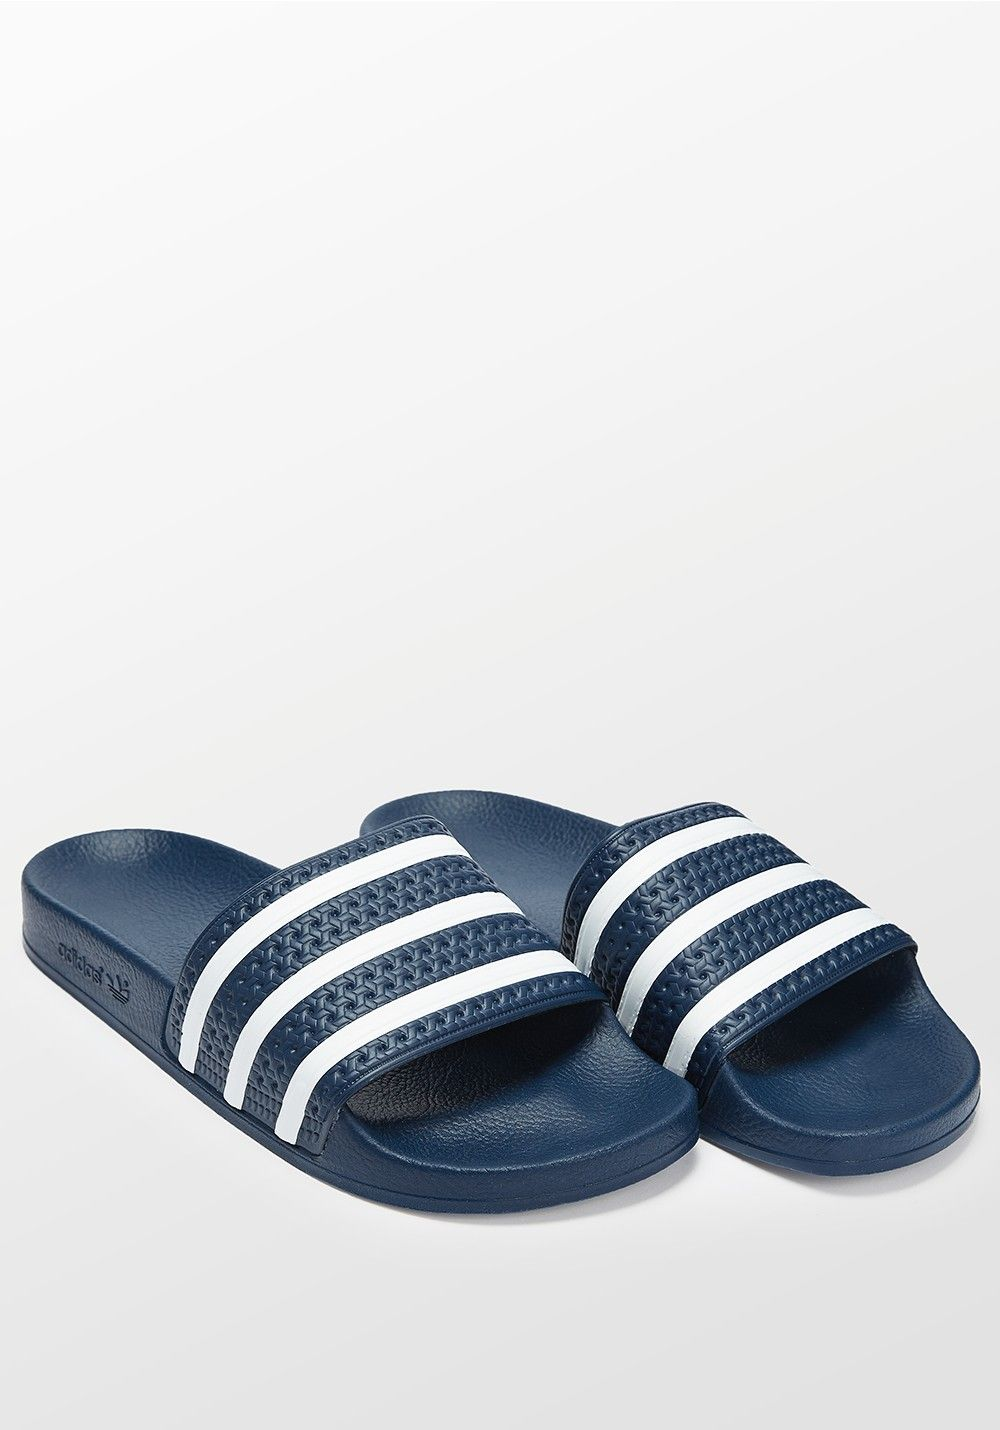 f91a2e179 Adidas Adilette navy blue and white slides